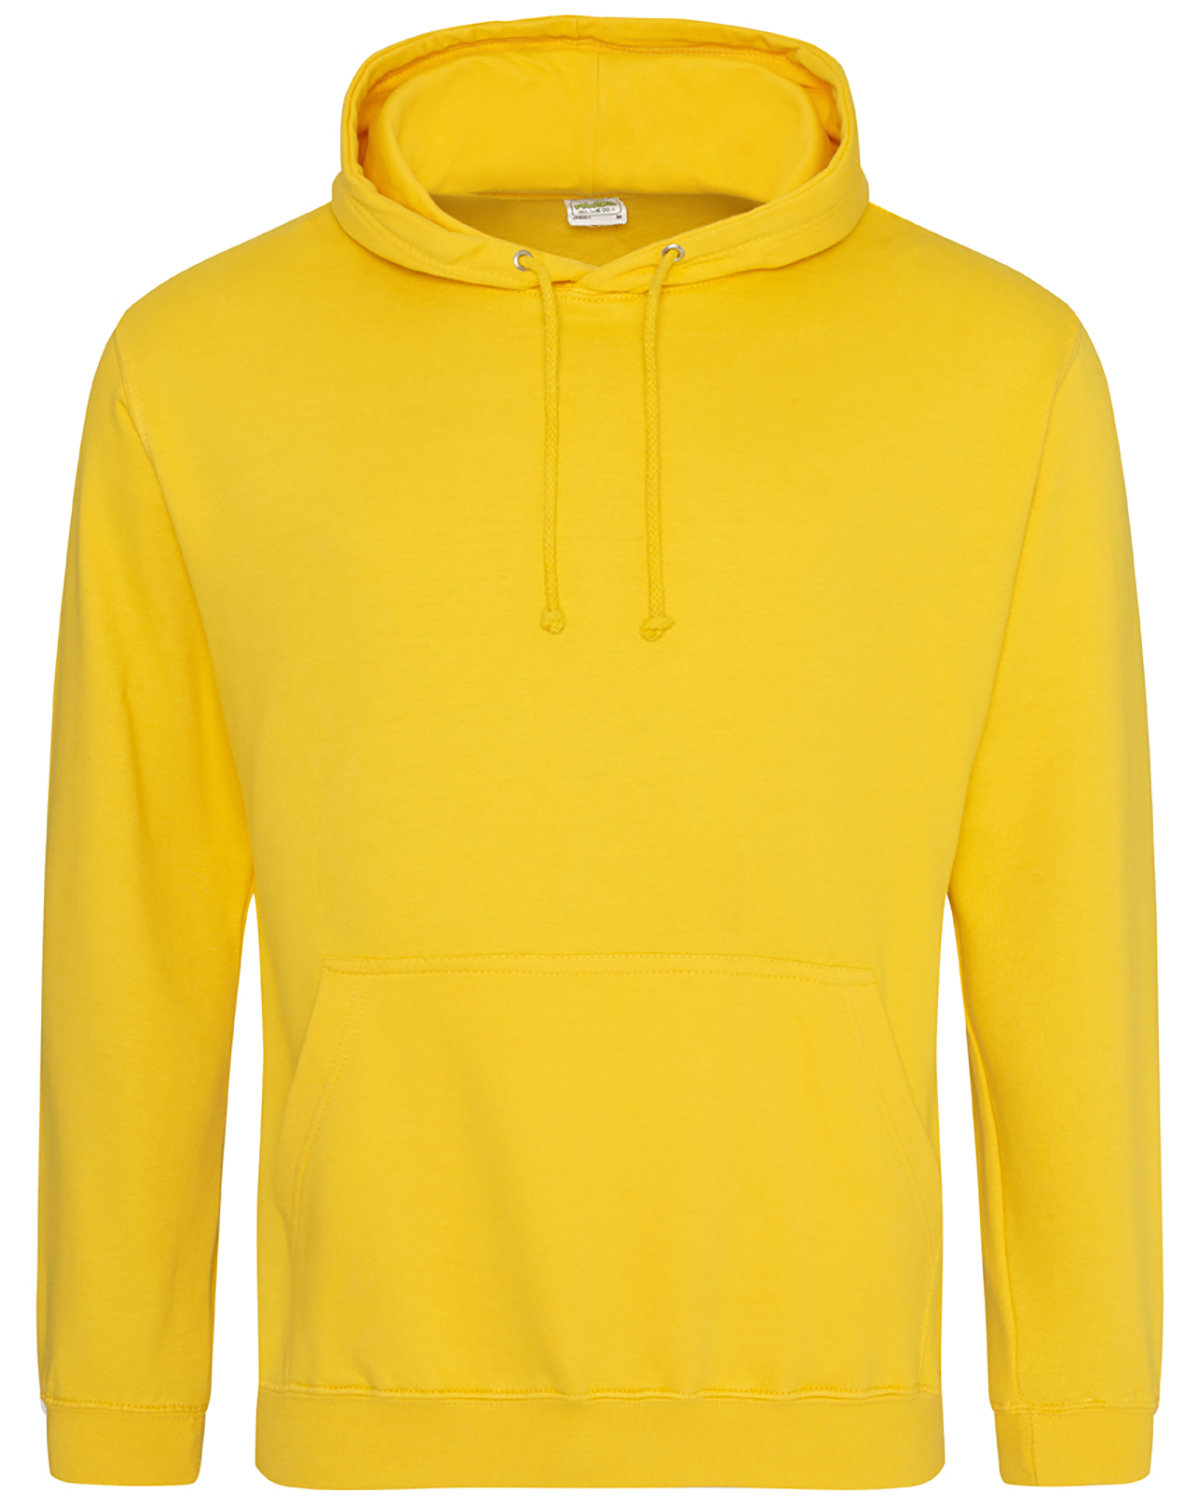 Just Hoods By AWDis Men's 80/20 Midweight College Hooded Sweatshirt GOLD